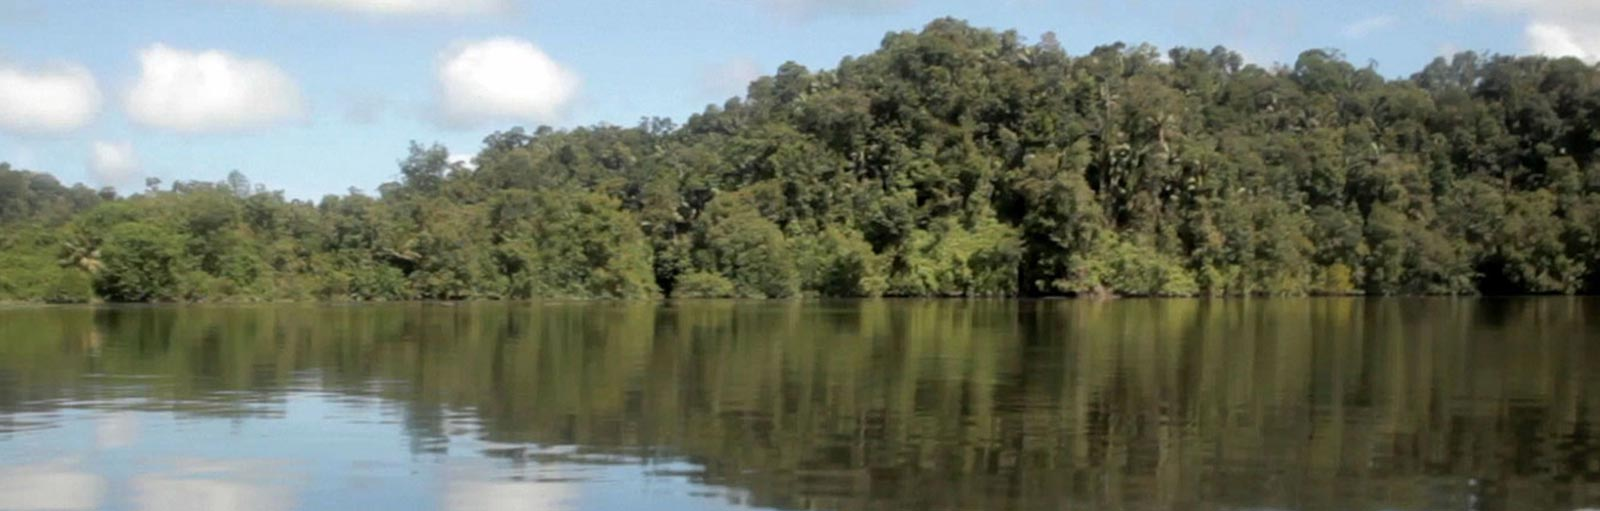 Bioremediation of a river contaminated with hydrocarbons